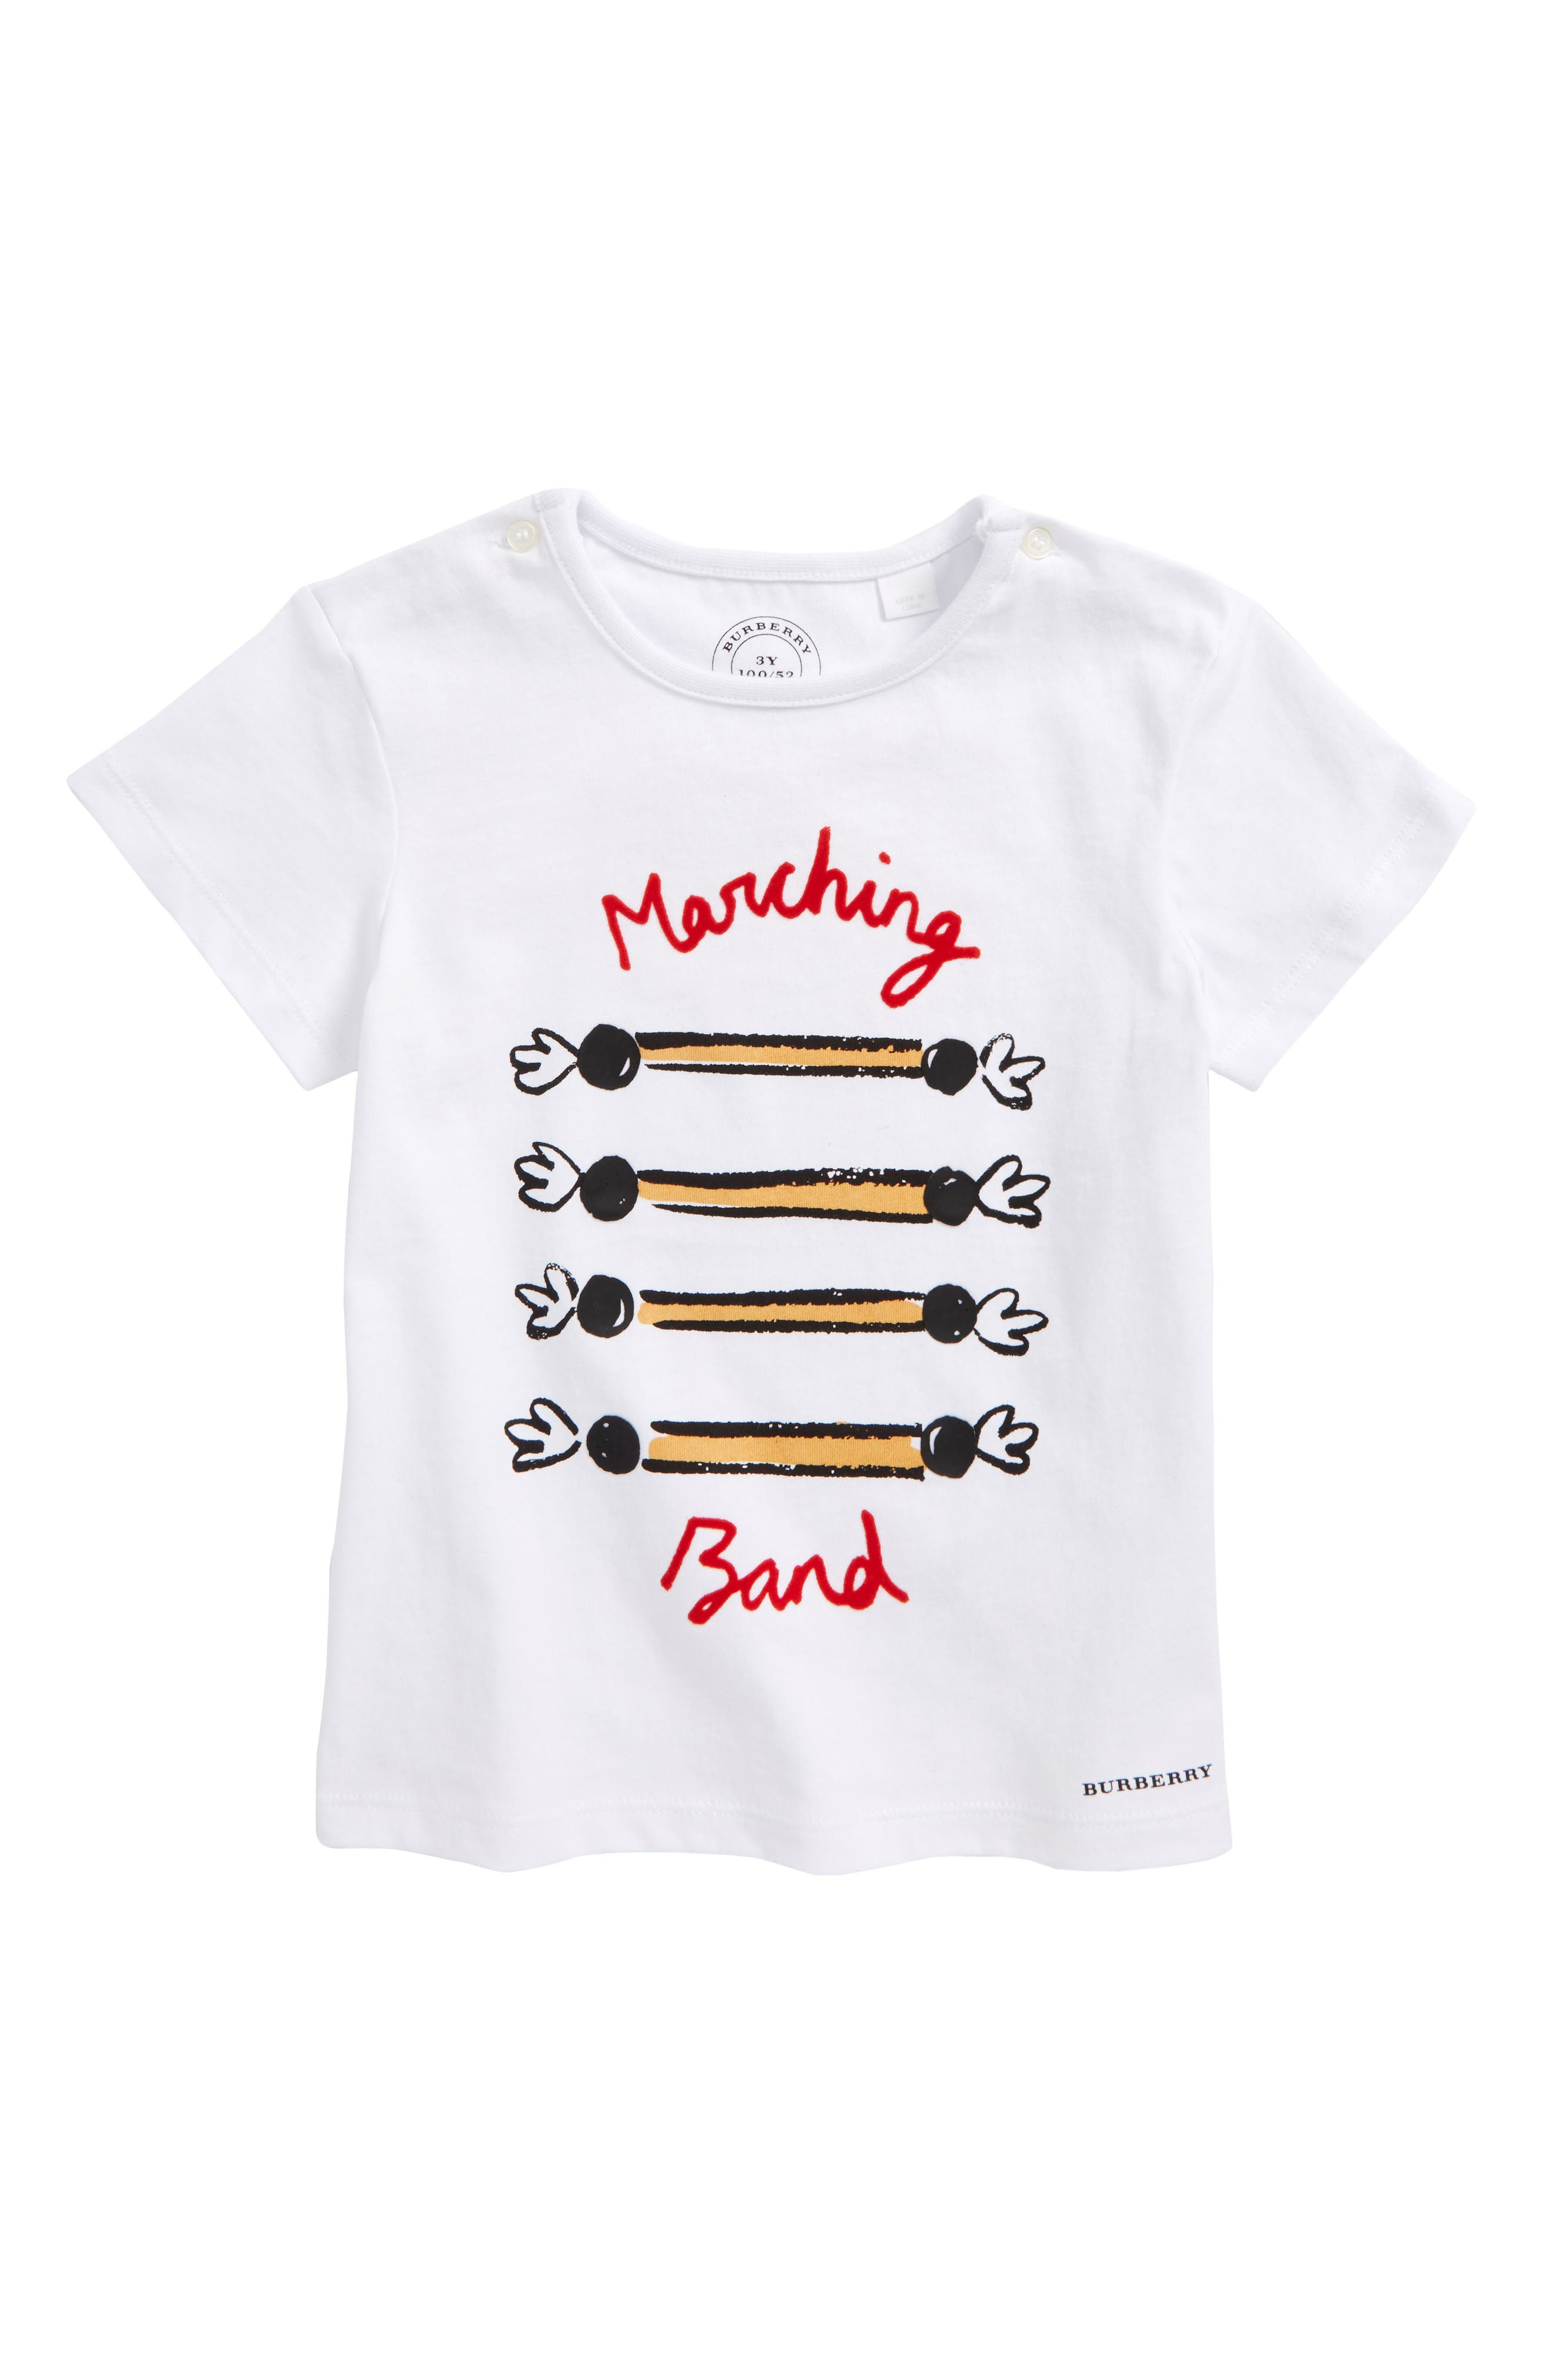 Marching Band Tee,                             Main thumbnail 1, color,                             100